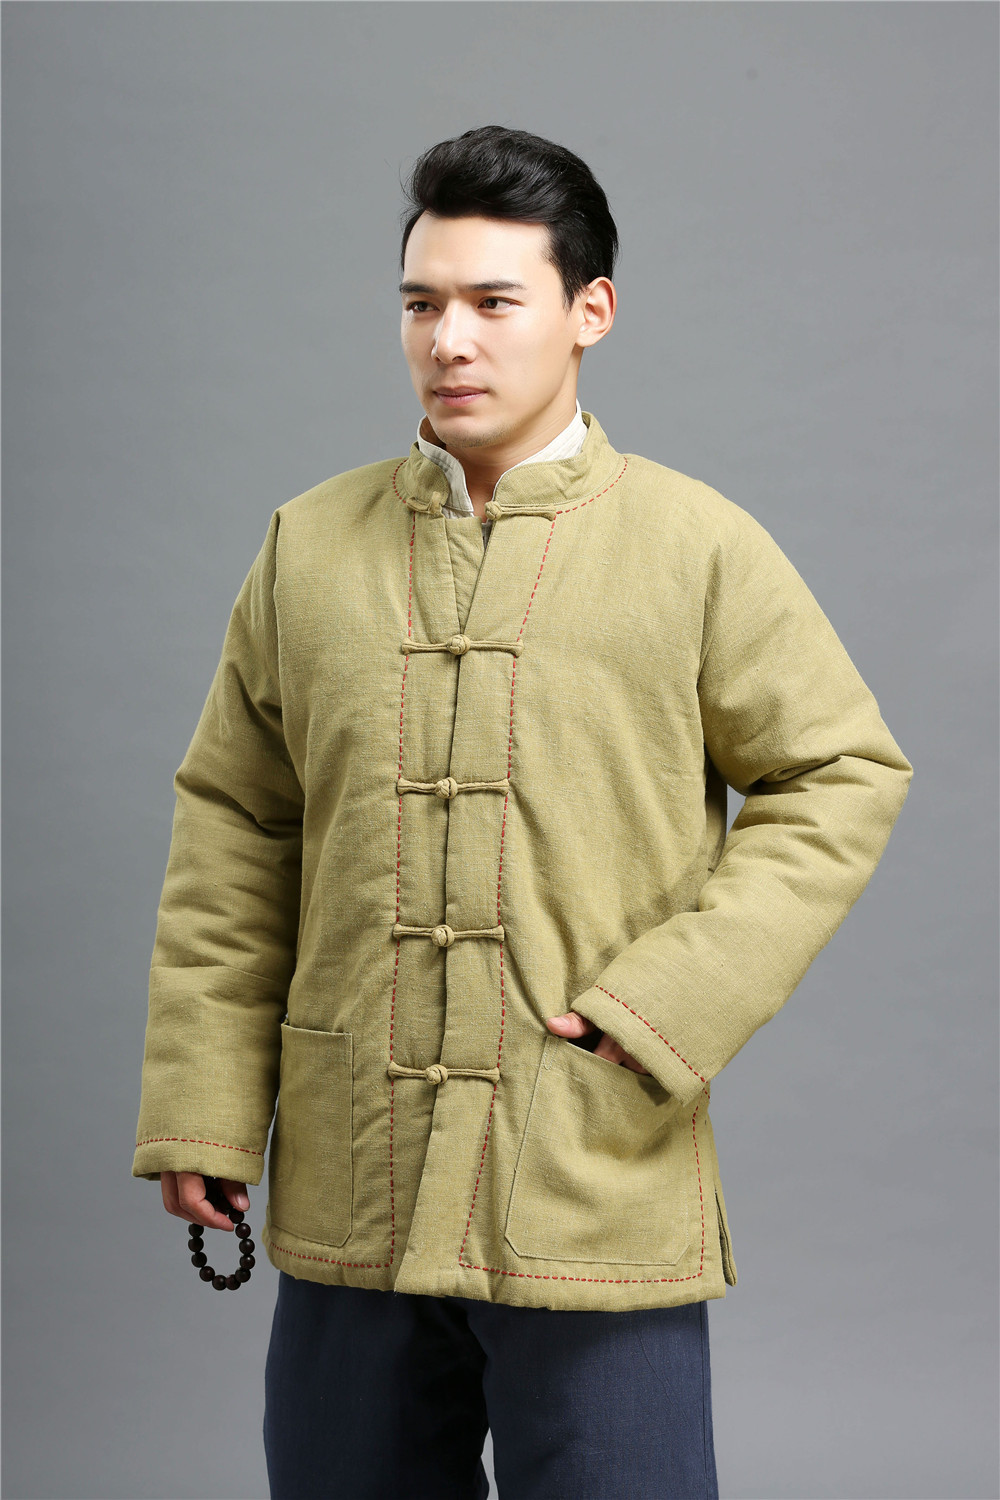 2015 Autumn winter 2 colors vintage cotton linen mens coat Cotton-padded clothes embroid ...